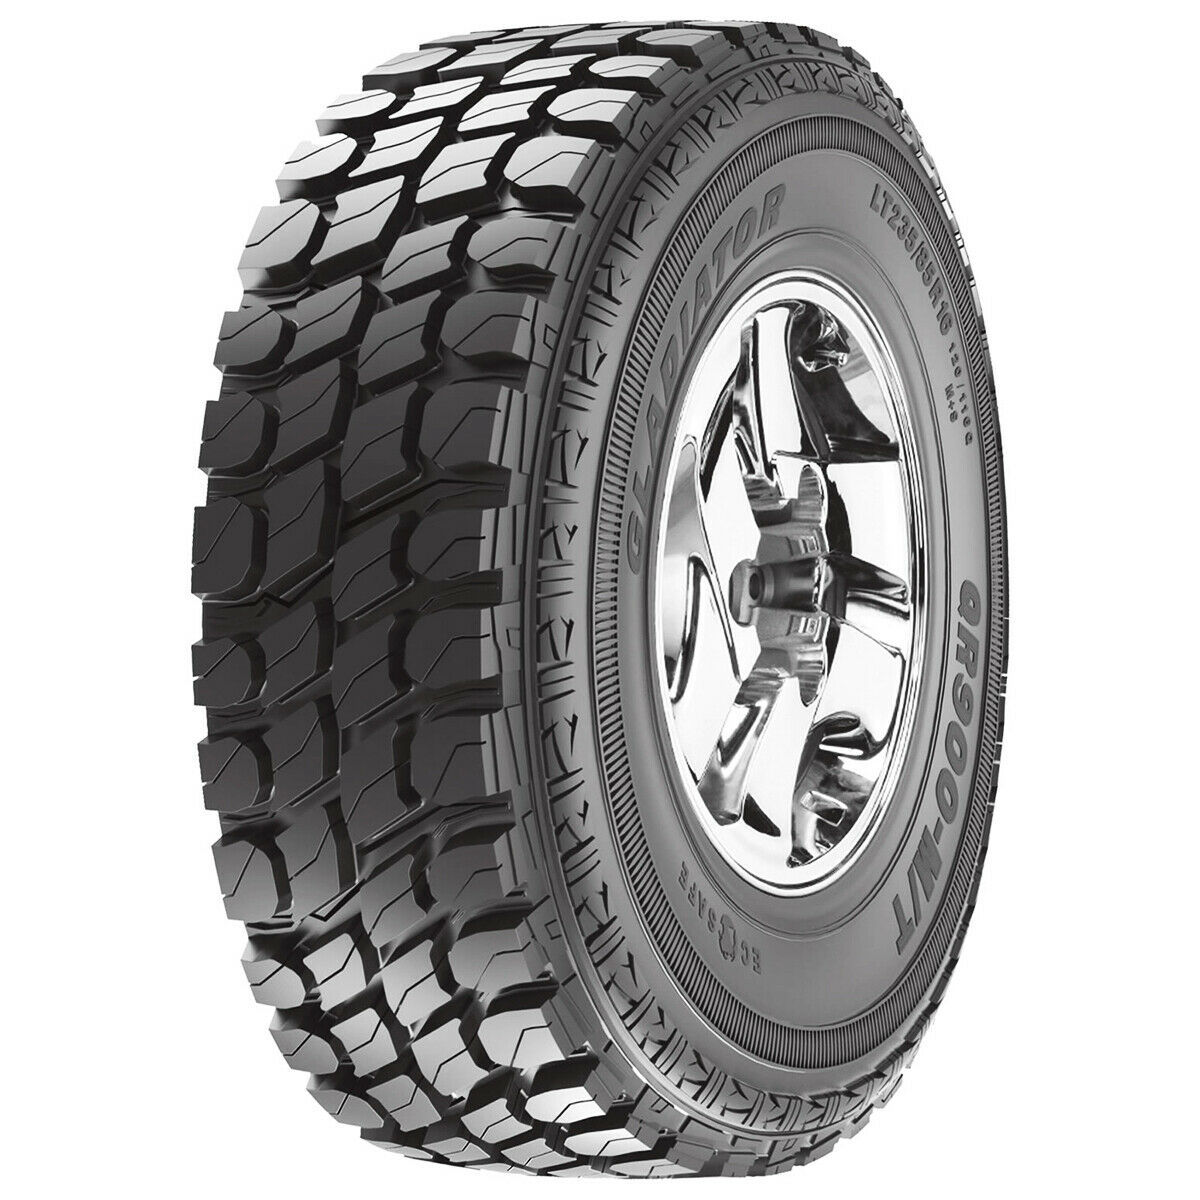 Primary image for 31X10.50R15LT Gladiator QR900-M/T 109Q 6PLY LOAD C